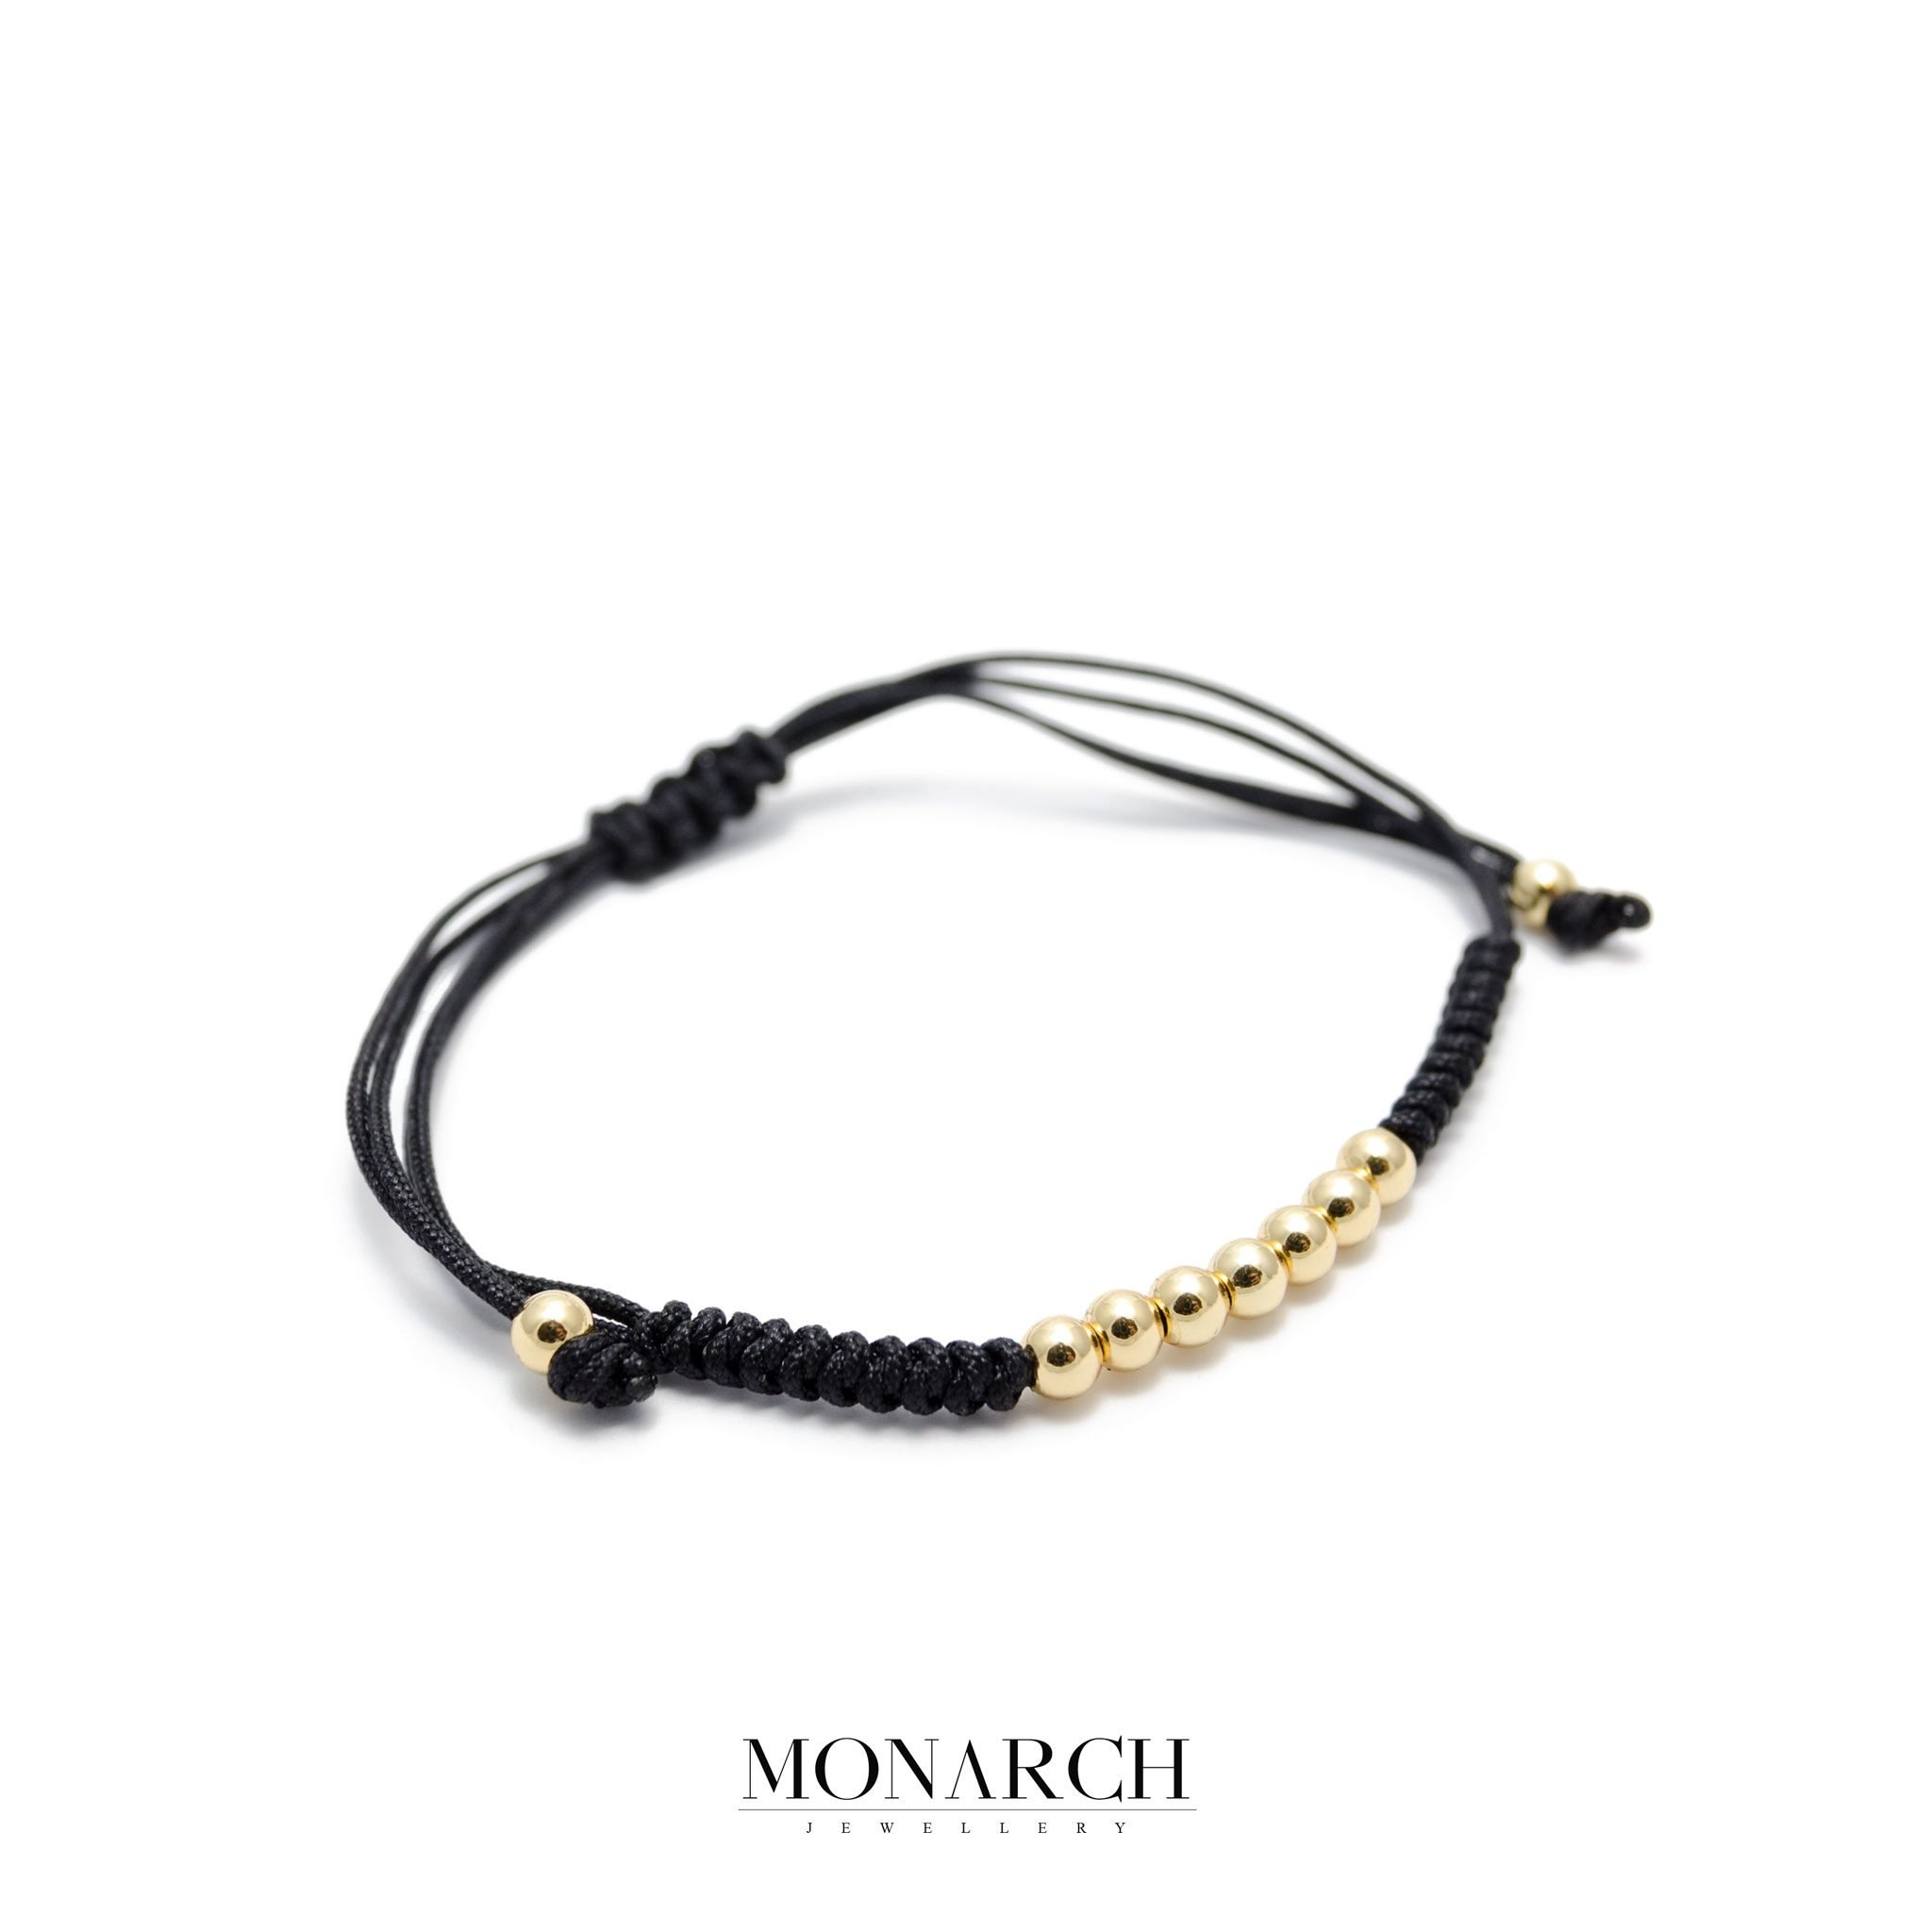 4-Monarch-Jewellery-24k-Gold-Bead-Macrame-Bracelet-resized